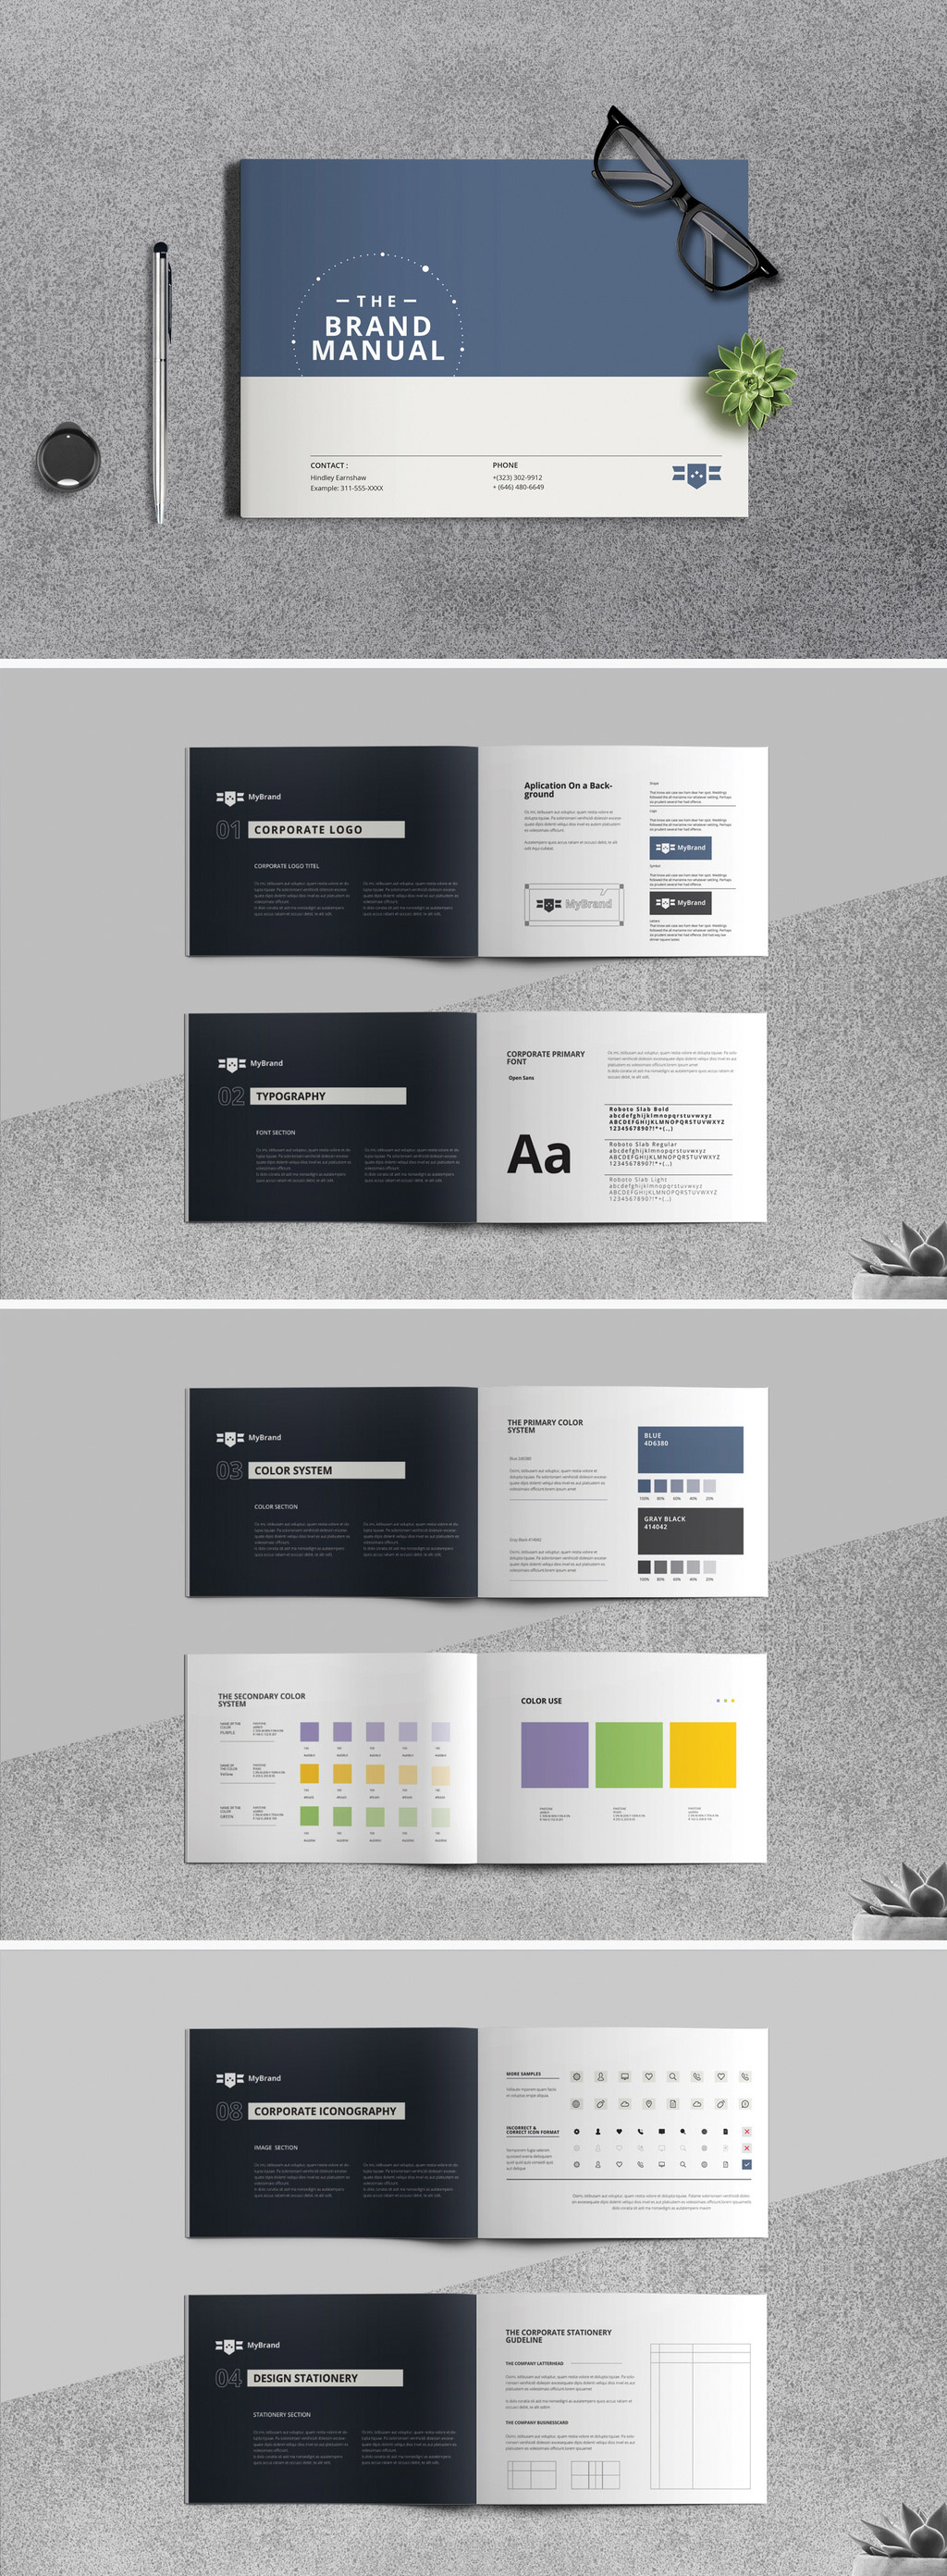 A minimalist brand identity brochure template for Adobe InDesign.